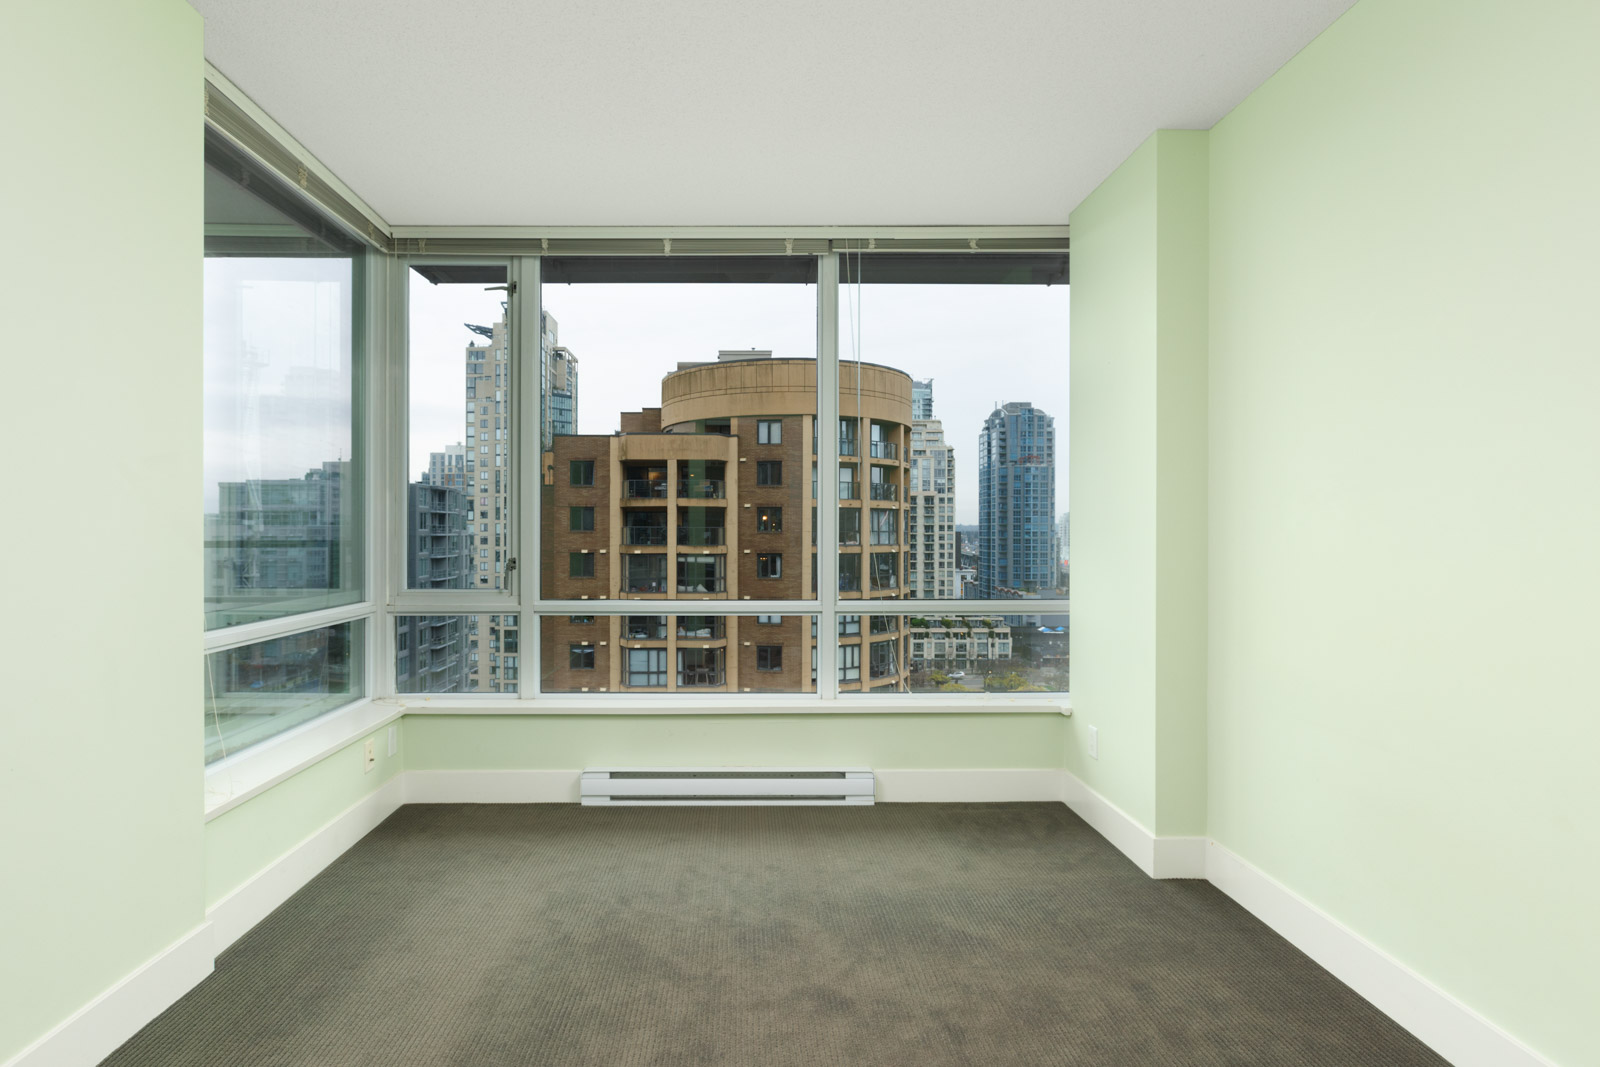 condo room with hardwood floors looking out wide windows to buildings across the street